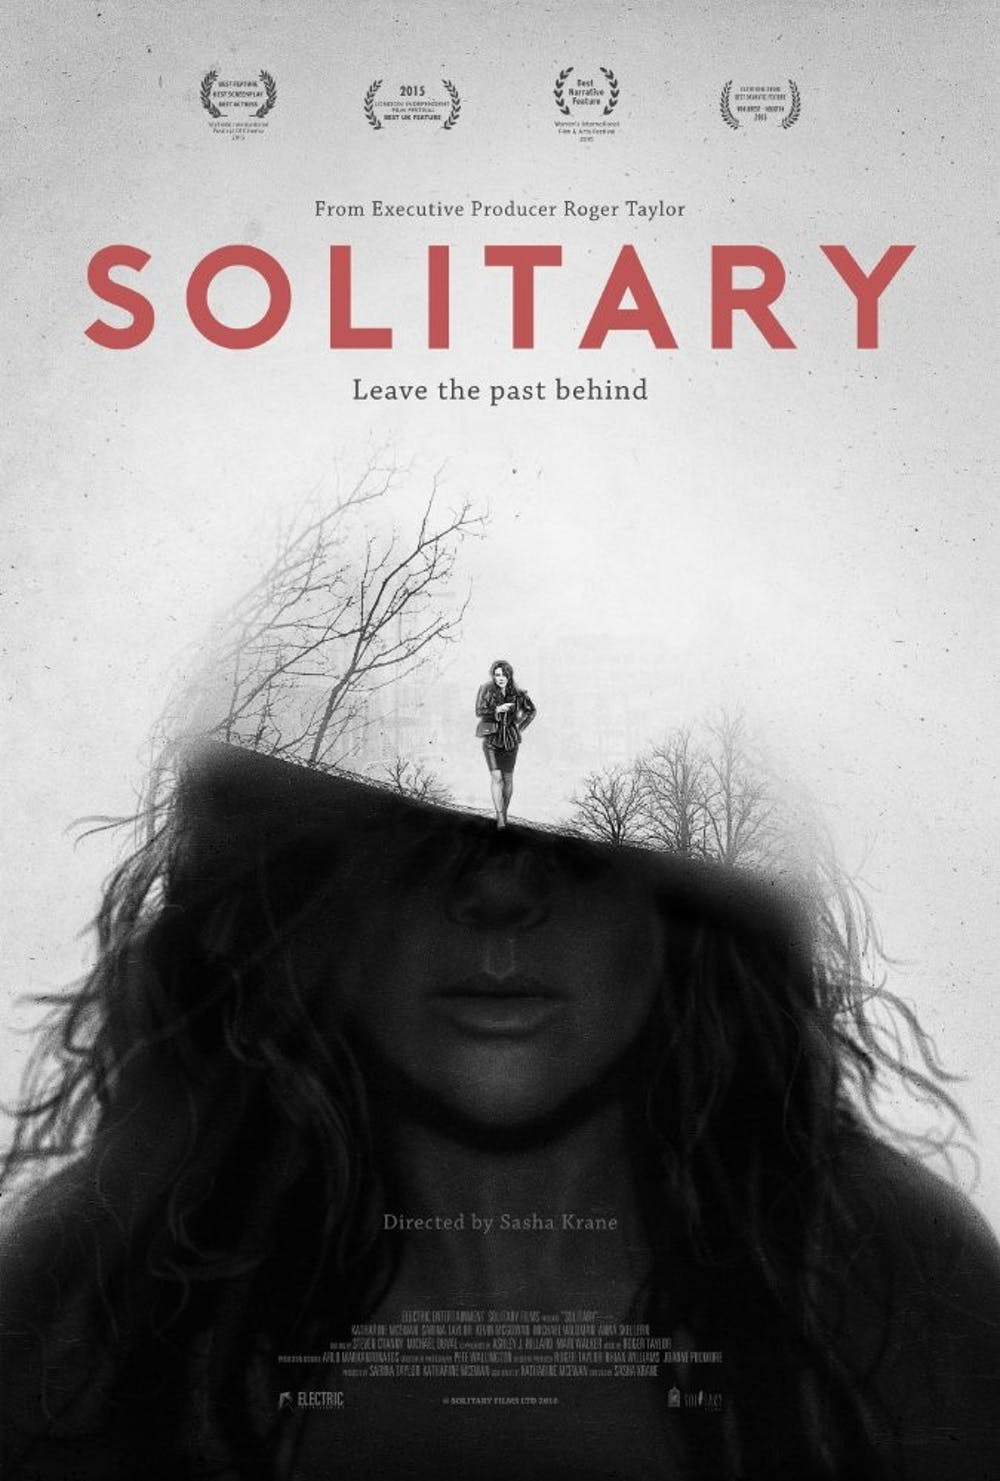 aesolitarycourtesysolitaryfilms